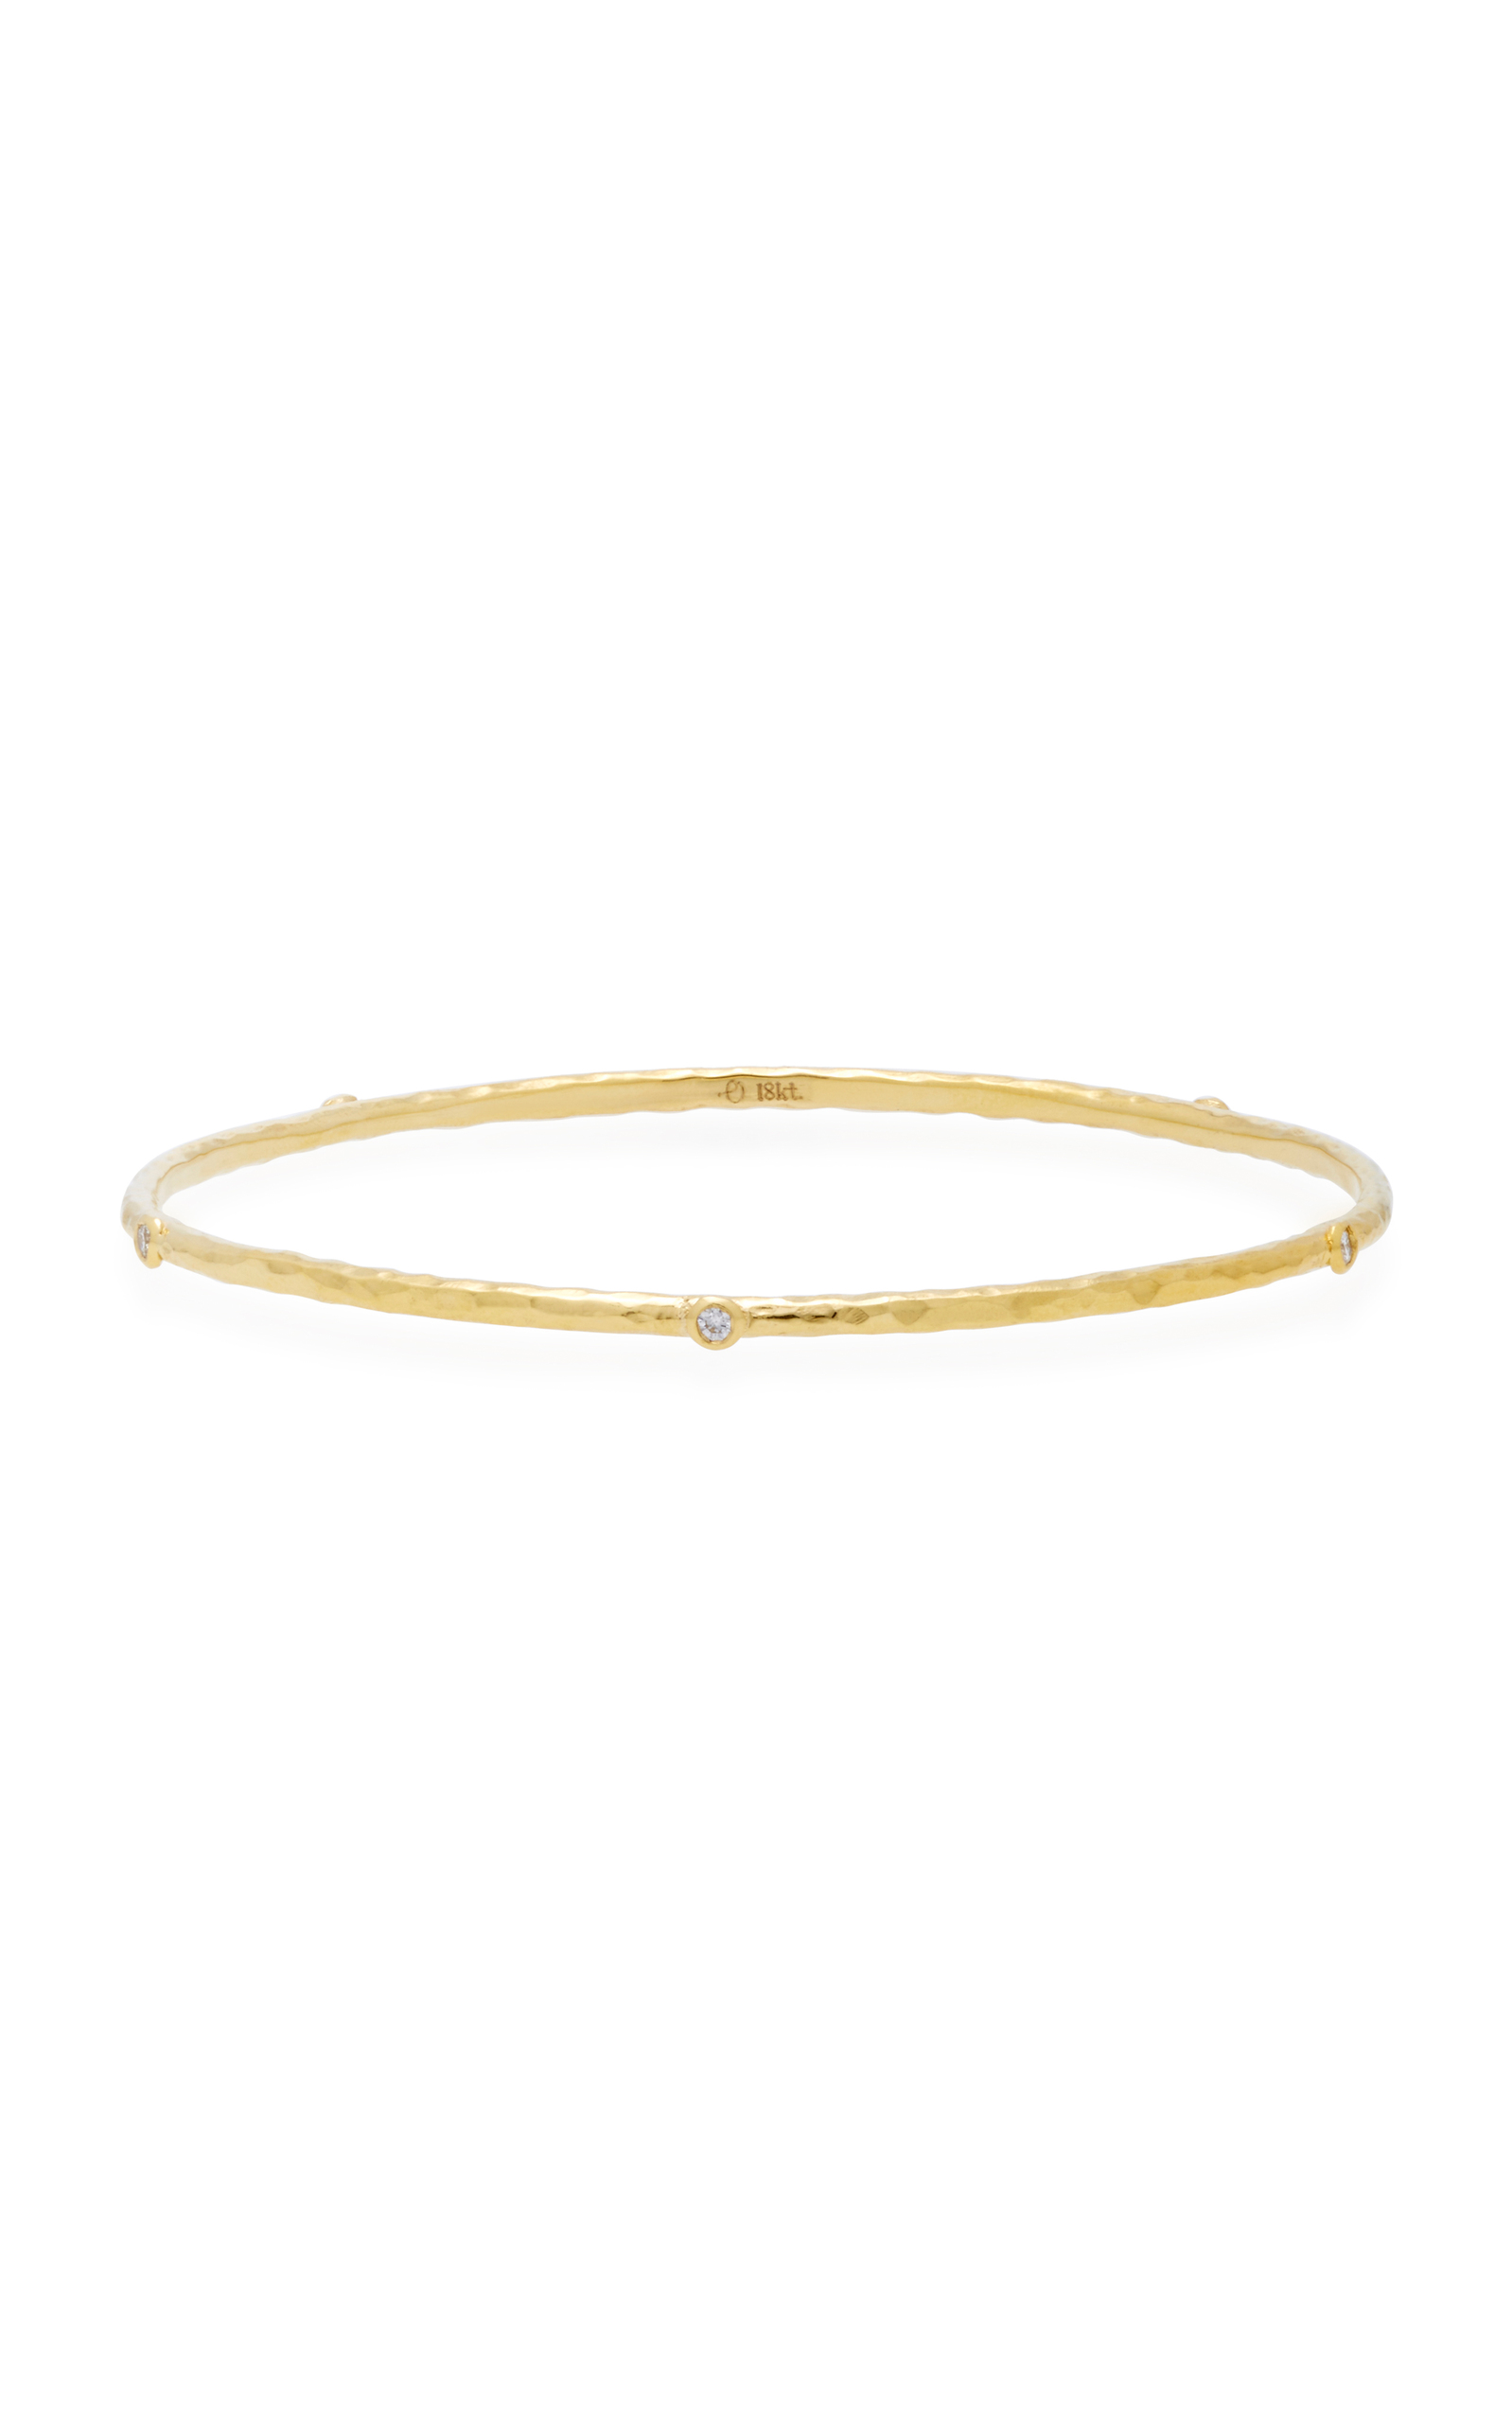 thin bangle jewelry bangles bracelet diamondland jewellery diamond carat